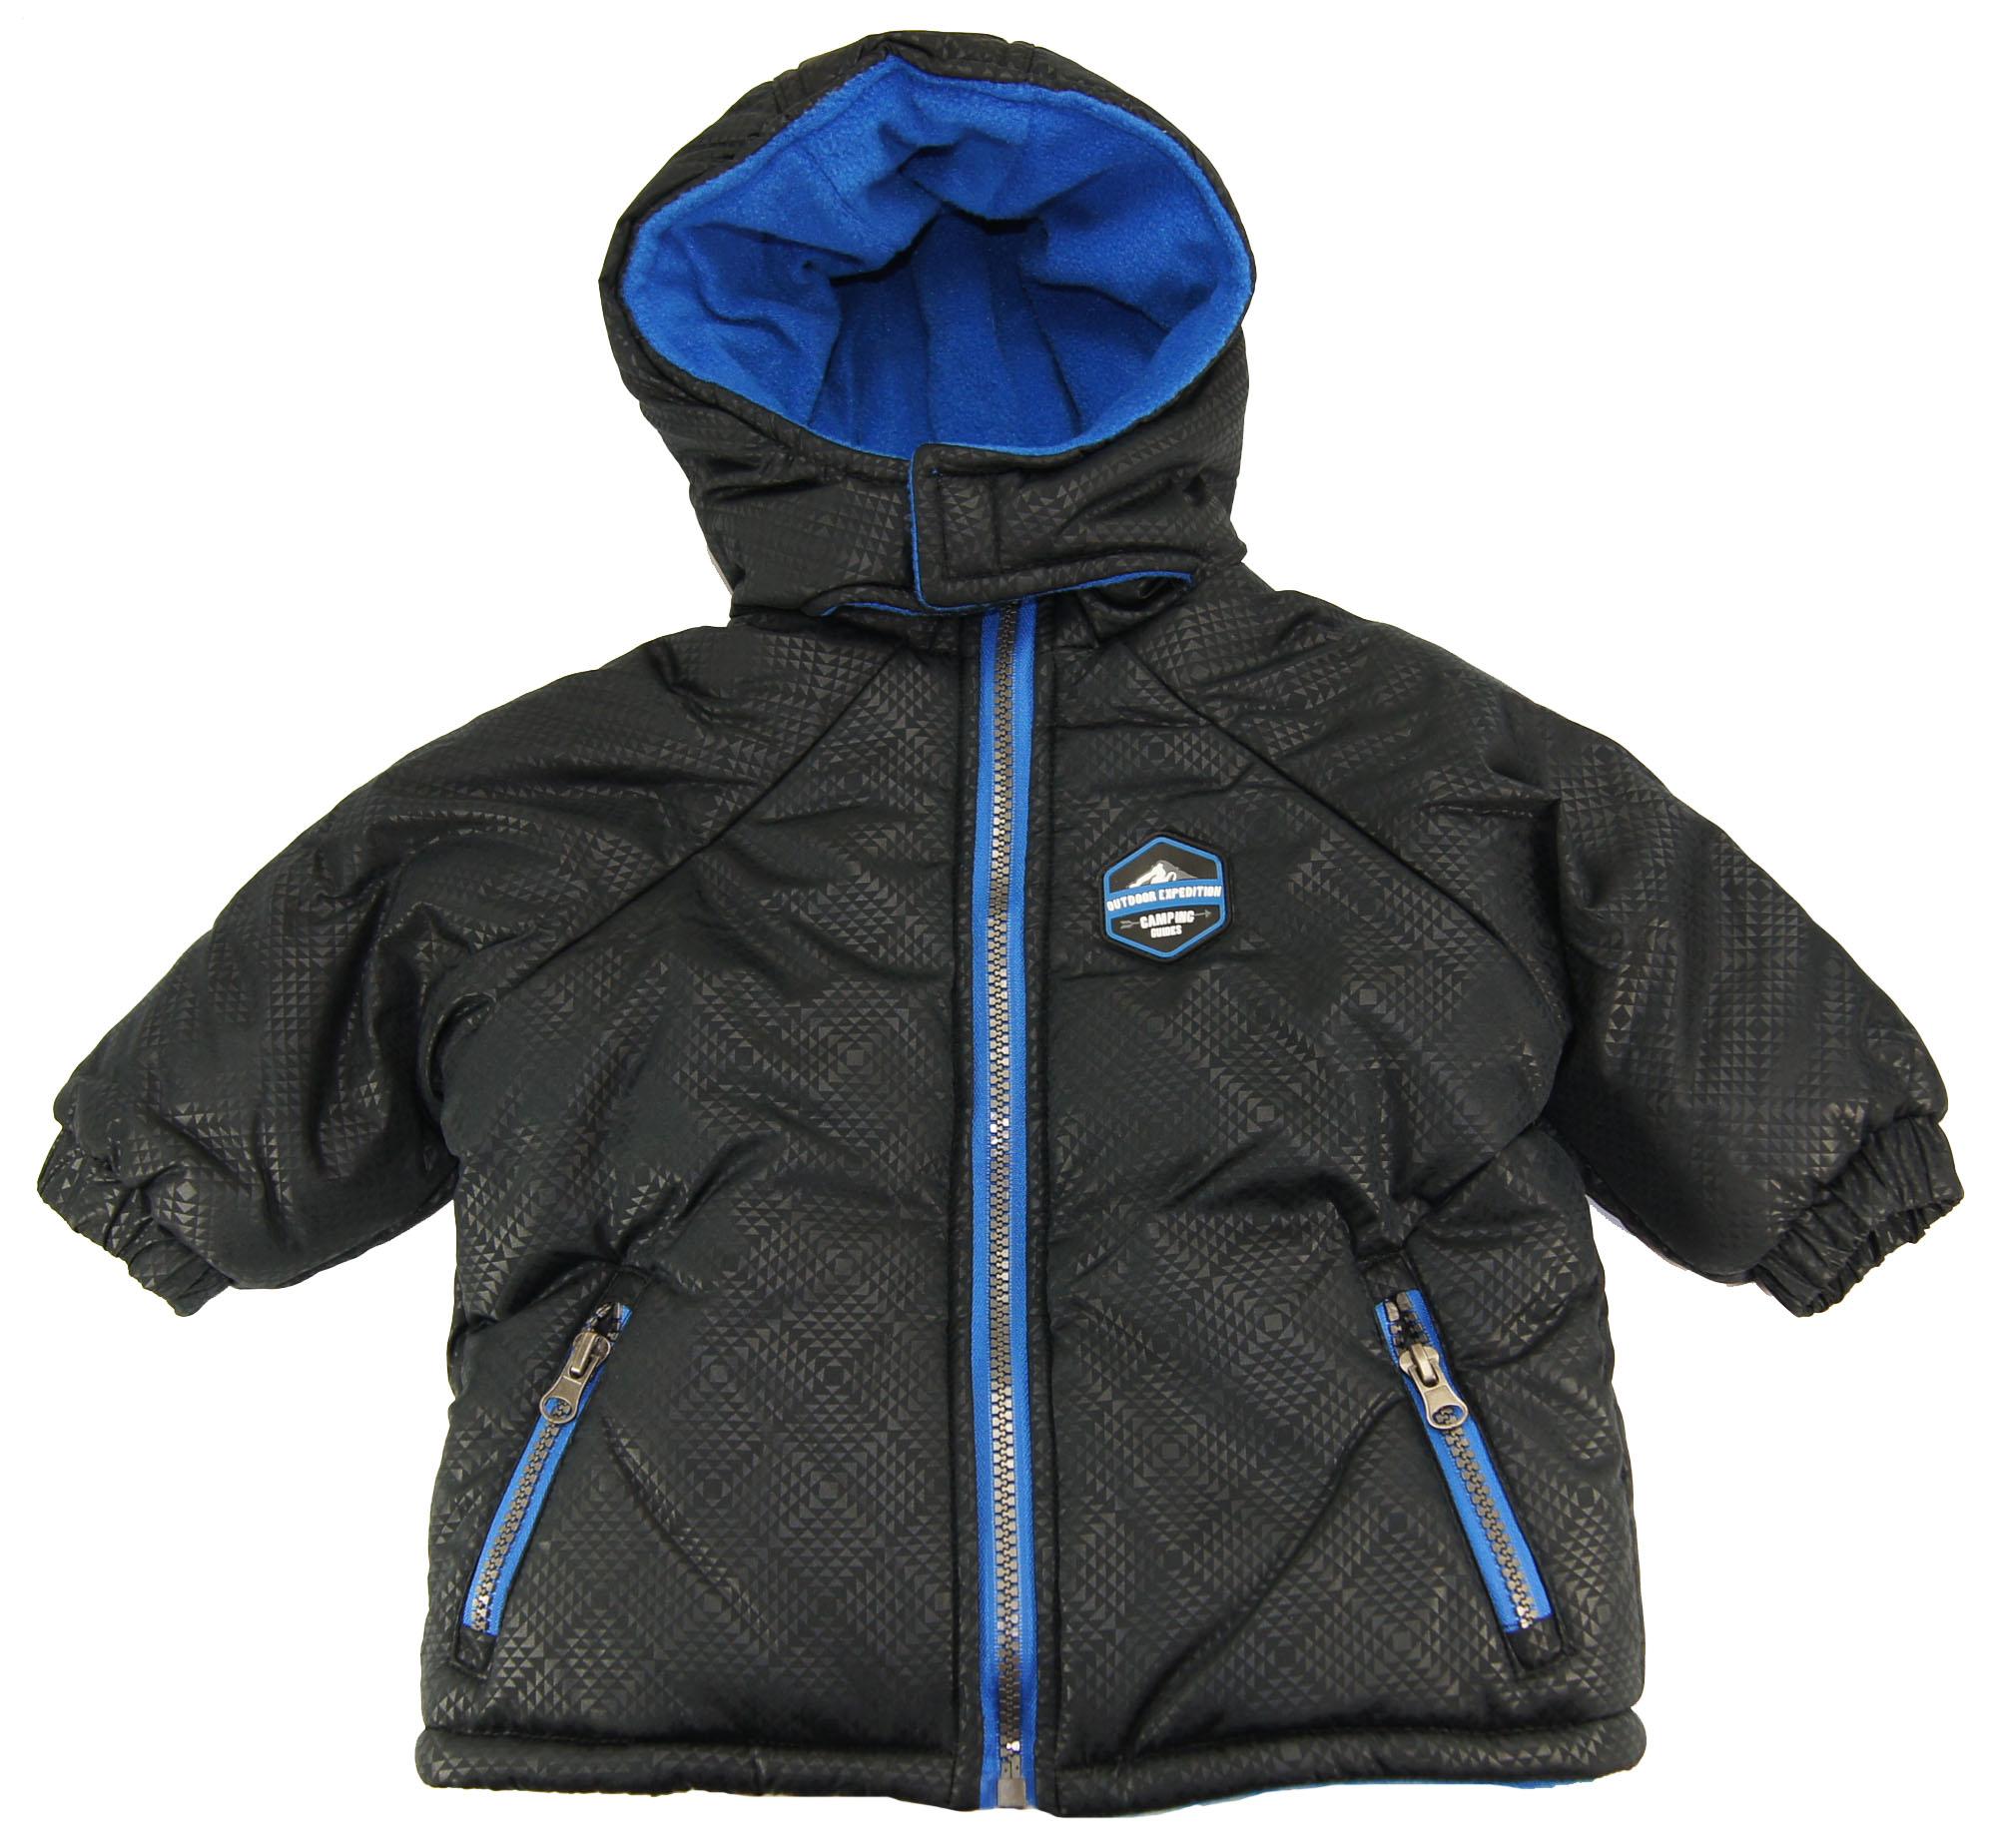 IXtreme Infant Boys 12-24M Winter Very Warm Black Puffer Hooded Jacket /Coat at Sears.com